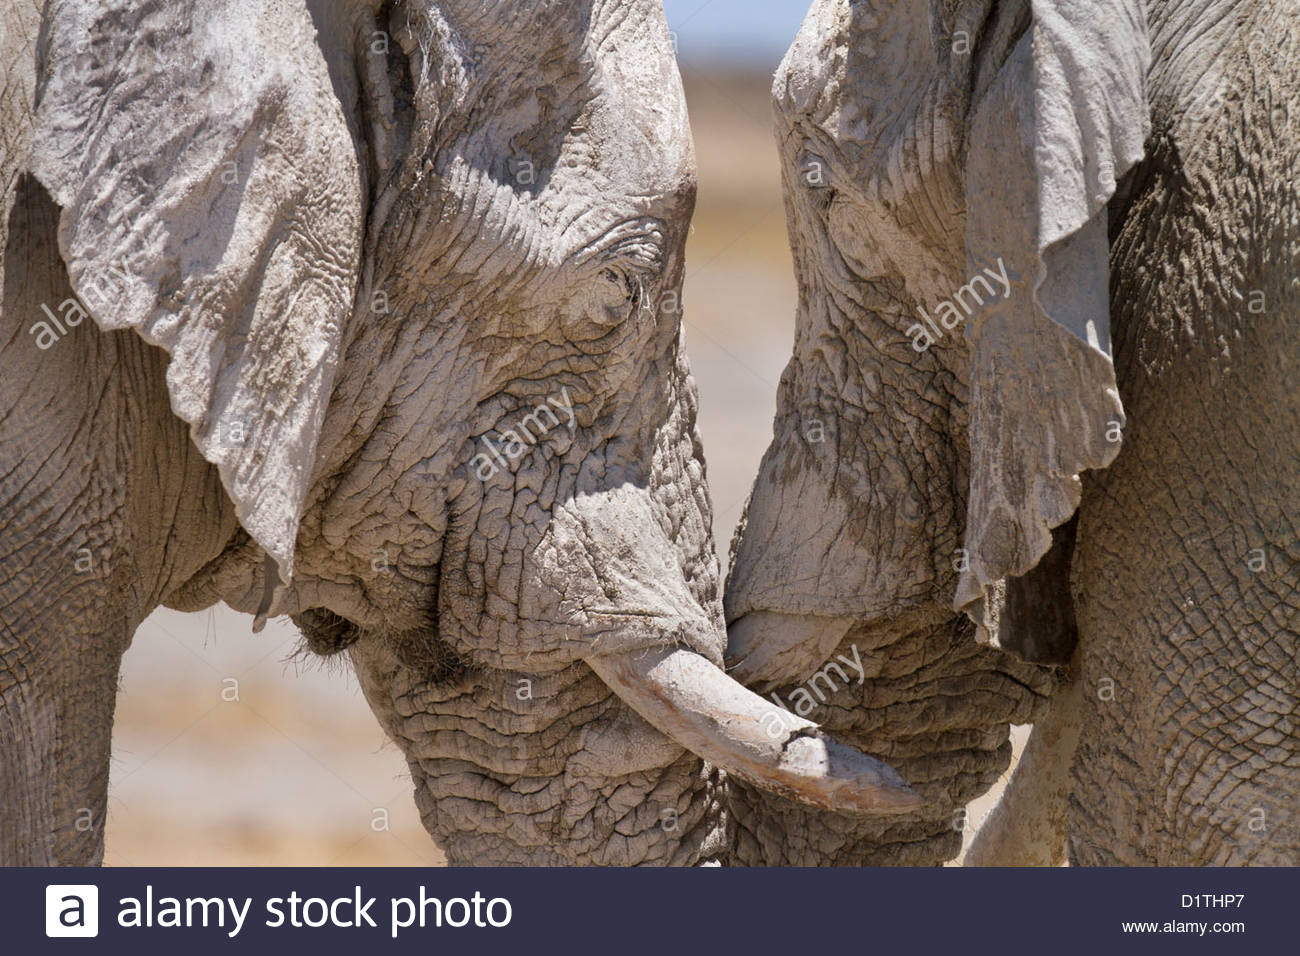 Elephants in Etosha National Park, Namibia Non-exclusive usage has been agreed for an on-line magazine (Aug 2014) - Stock Image